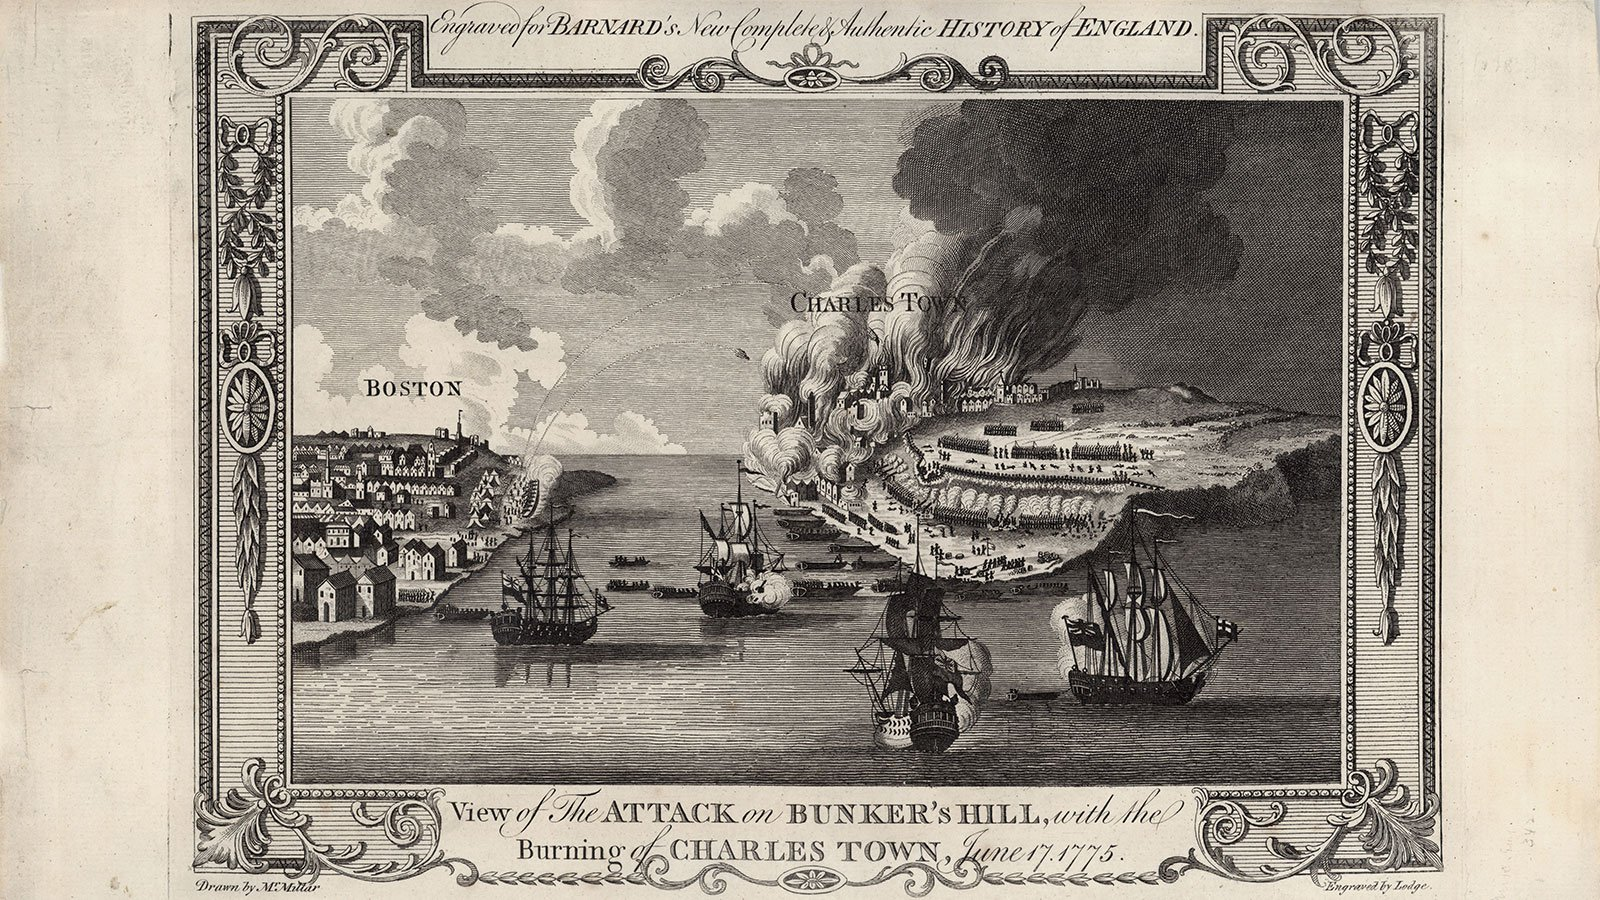 View of the Attack on Bunker's Hill, with the Burning of Charles Town, June 17, 1775